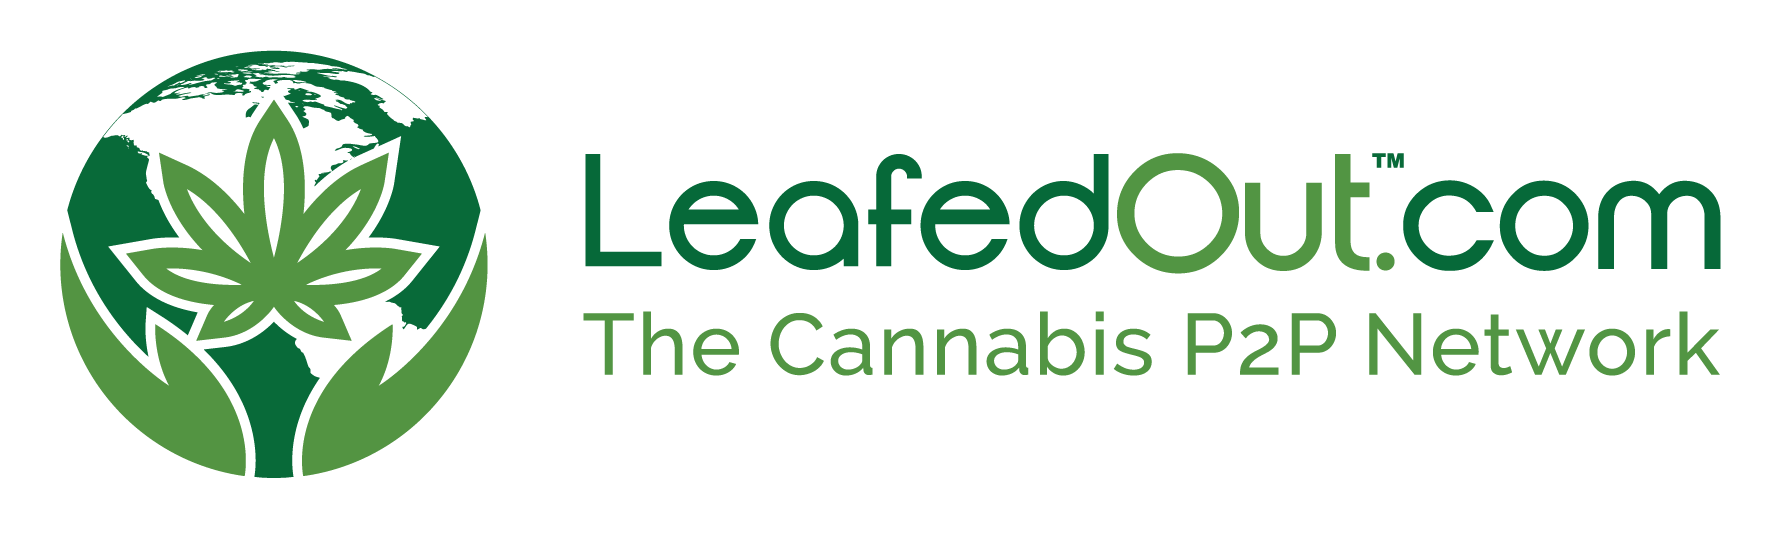 CannabisBusinessSocialNetworkLeafedOut